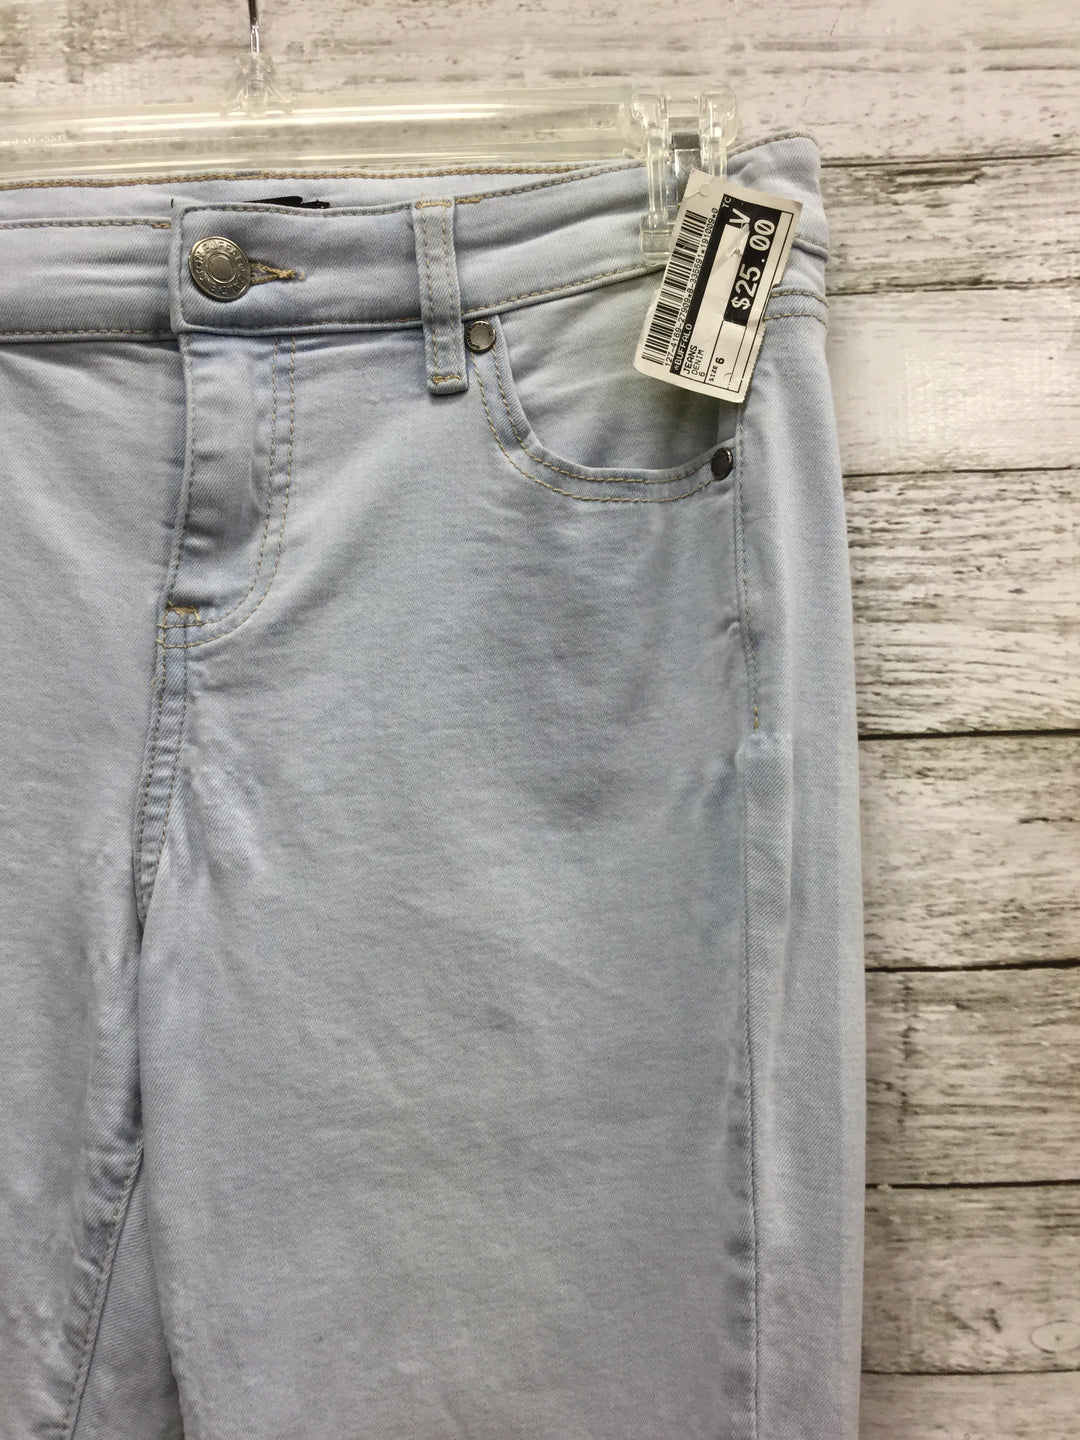 Photo #1 - BRAND: BUFFALO , STYLE: JEANS , COLOR: DENIM , SIZE: 6 , SKU: 127-4169-27909, , LIGHT WASH JEANS IN GOOD CONDITION WITH SOME MINOR WEAR.